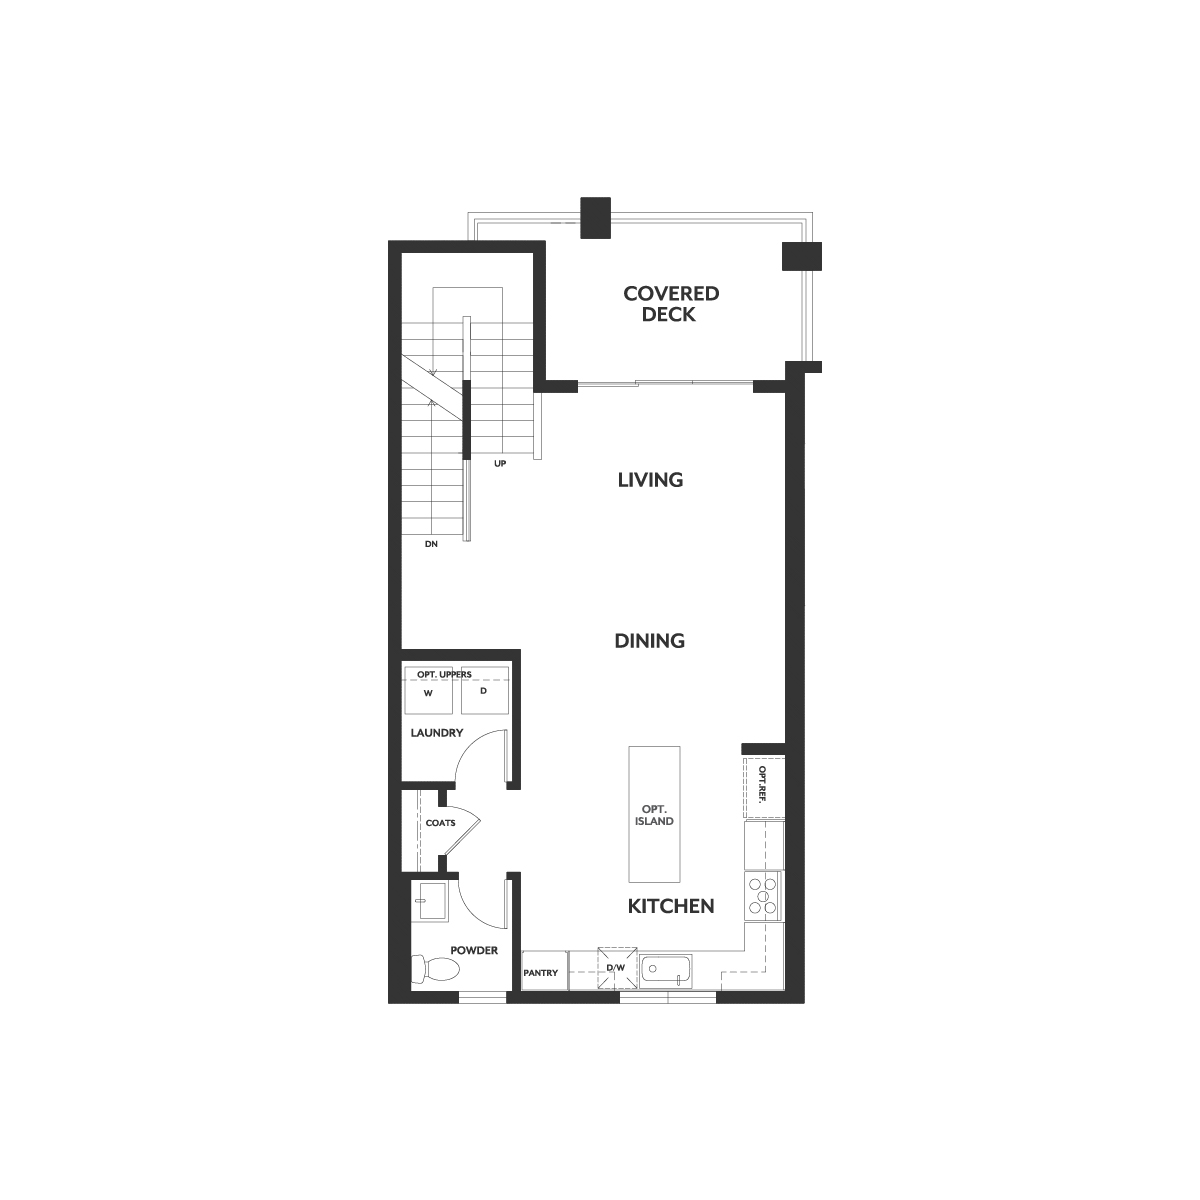 Residence 2A floor 2 plan | Wilshire at Boulevard in Dublin, CA | Brookfield Residential